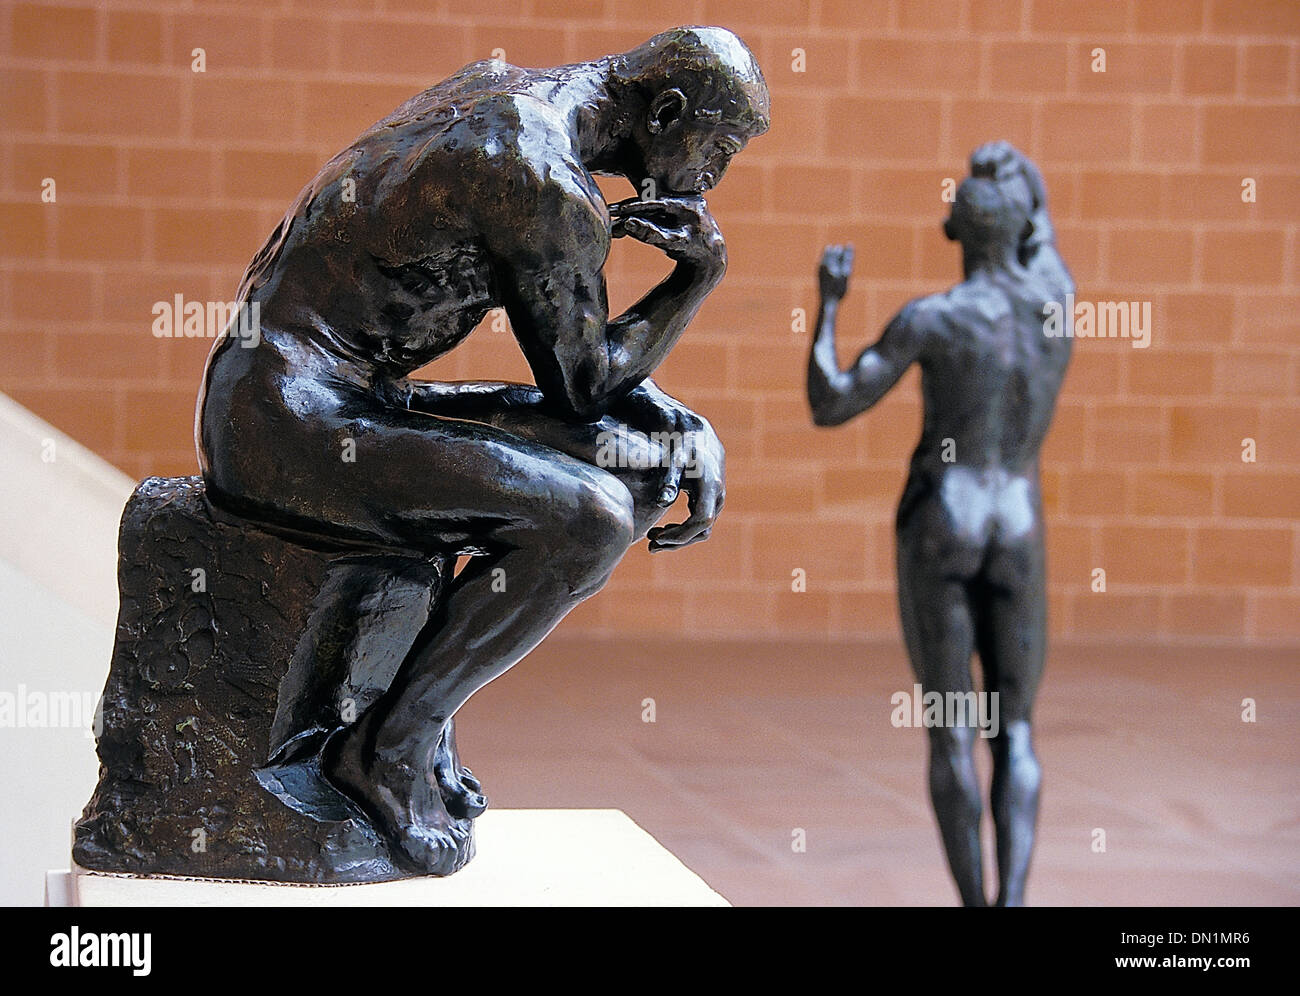 The thinker by rodin at the burrell collection Glasgow - Stock Image